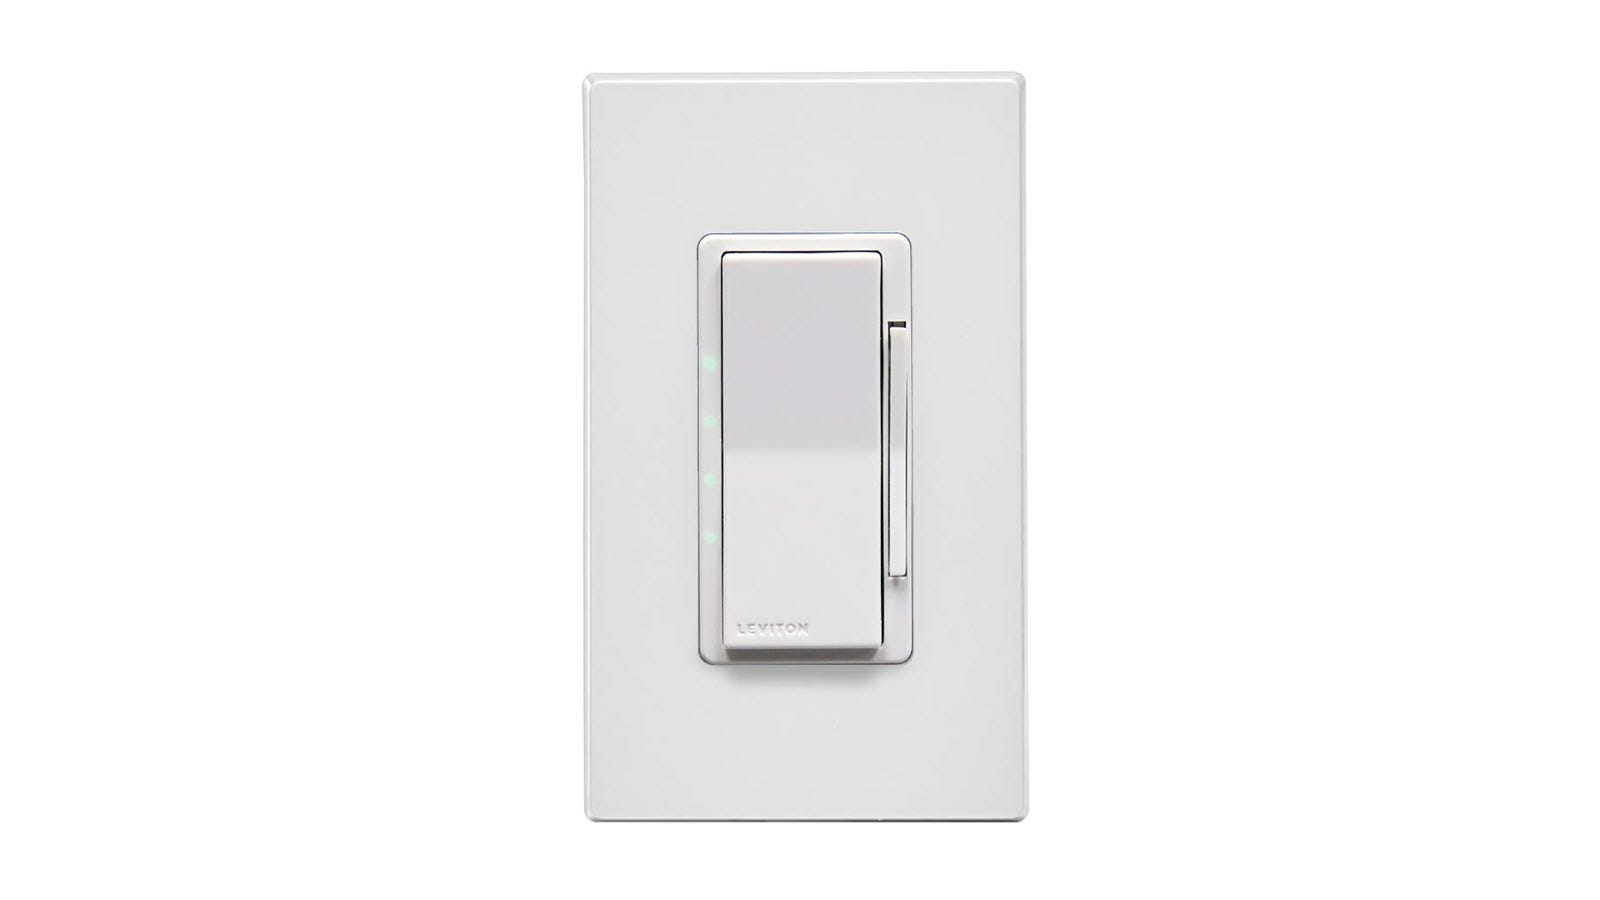 A white Decora Smart Wi-Fi 4-Speed Fan Controller.